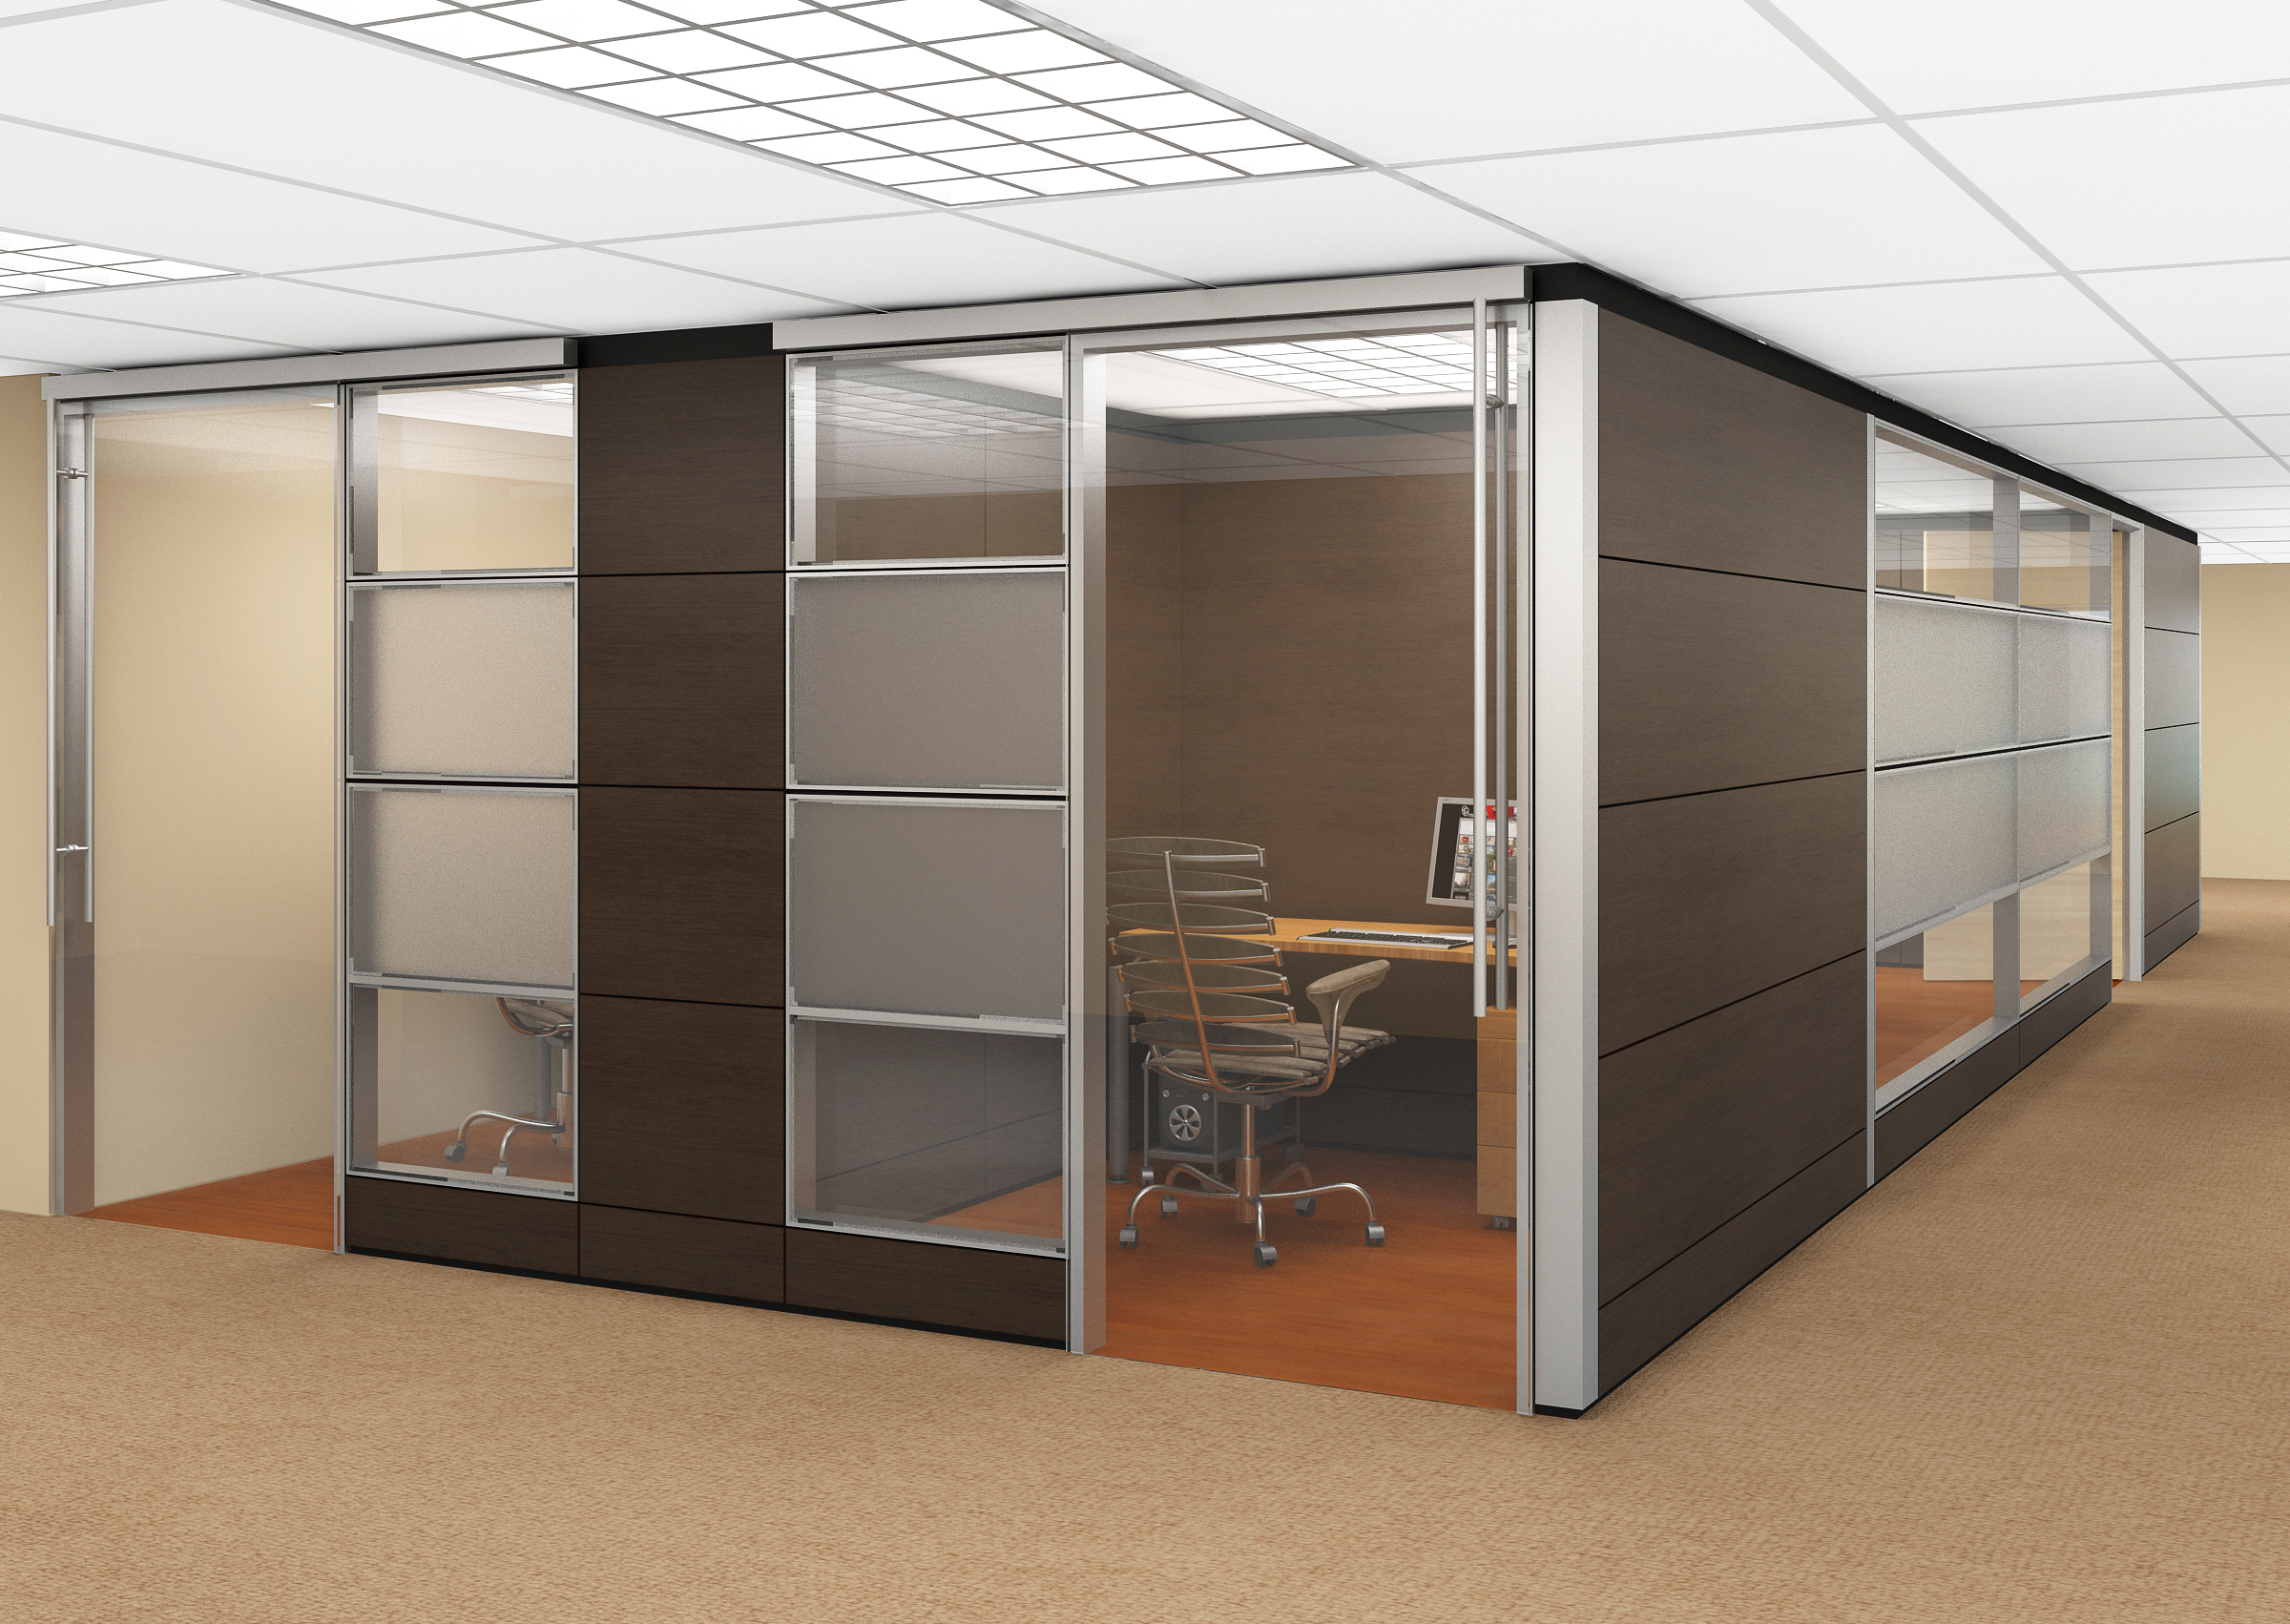 duo segmentation is a laminate glass partition wall office divider